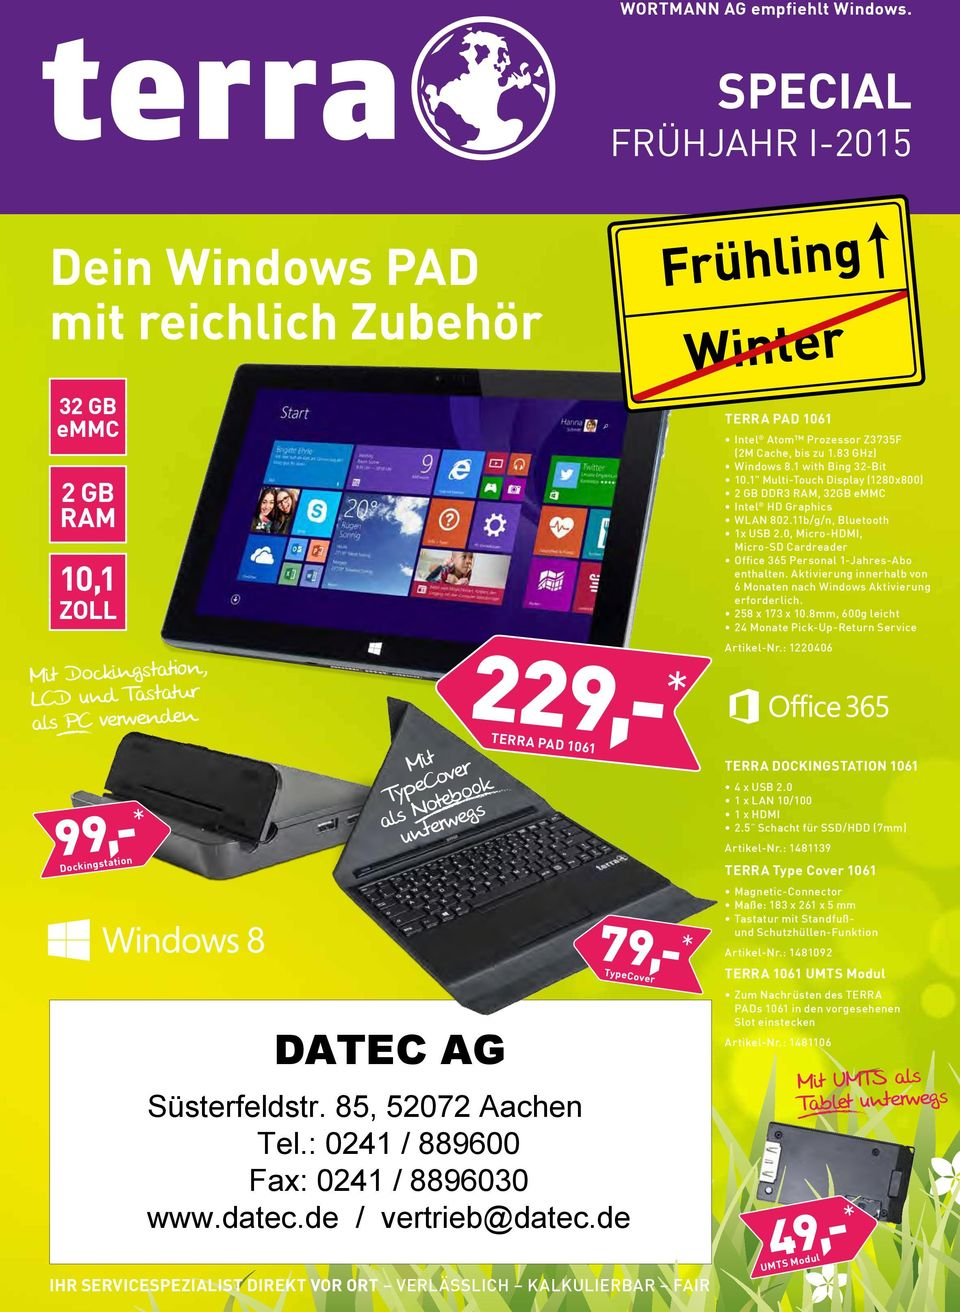 "1"" Multi-Touch Display (1280x800) 2 GB DDR3 32GB emmc Intel HD Graphics WLAN 802.11b/g/n Bluetooth 1x 2.0 Micro-HDMI Micro-SD Cardreader Office 365 Personal 1-Jahres-Abo enthalten."